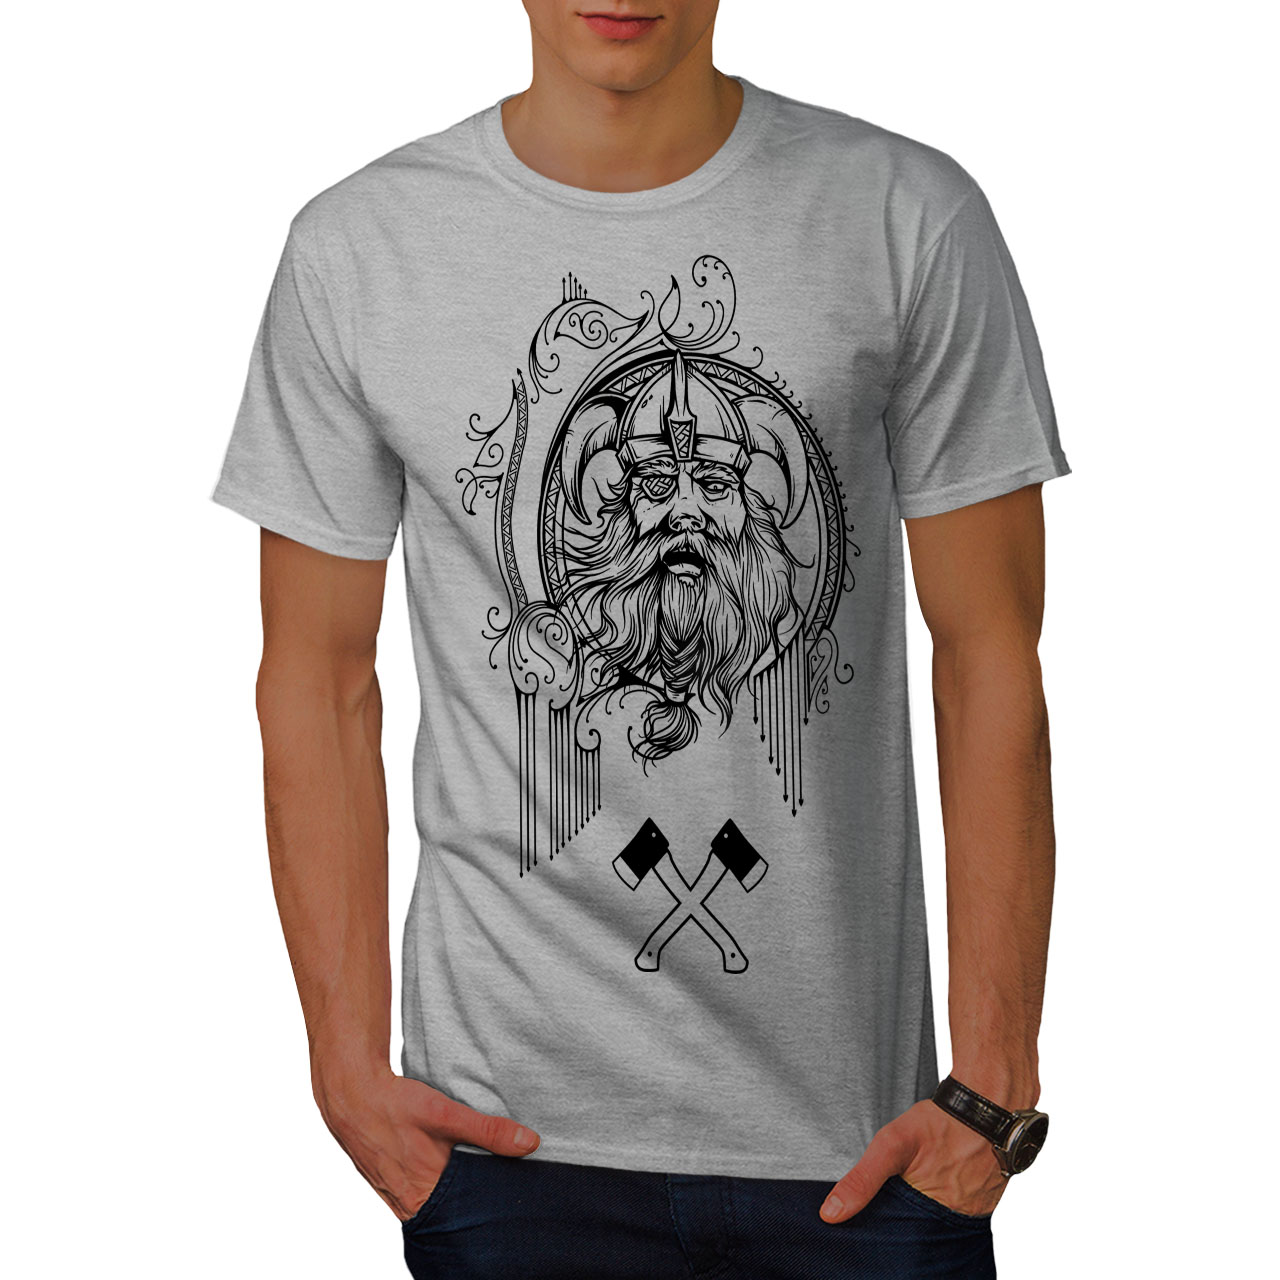 4d850d6f Wellcoda Viking Face Warrior Mens T-shirt, Battle Graphic Design ...